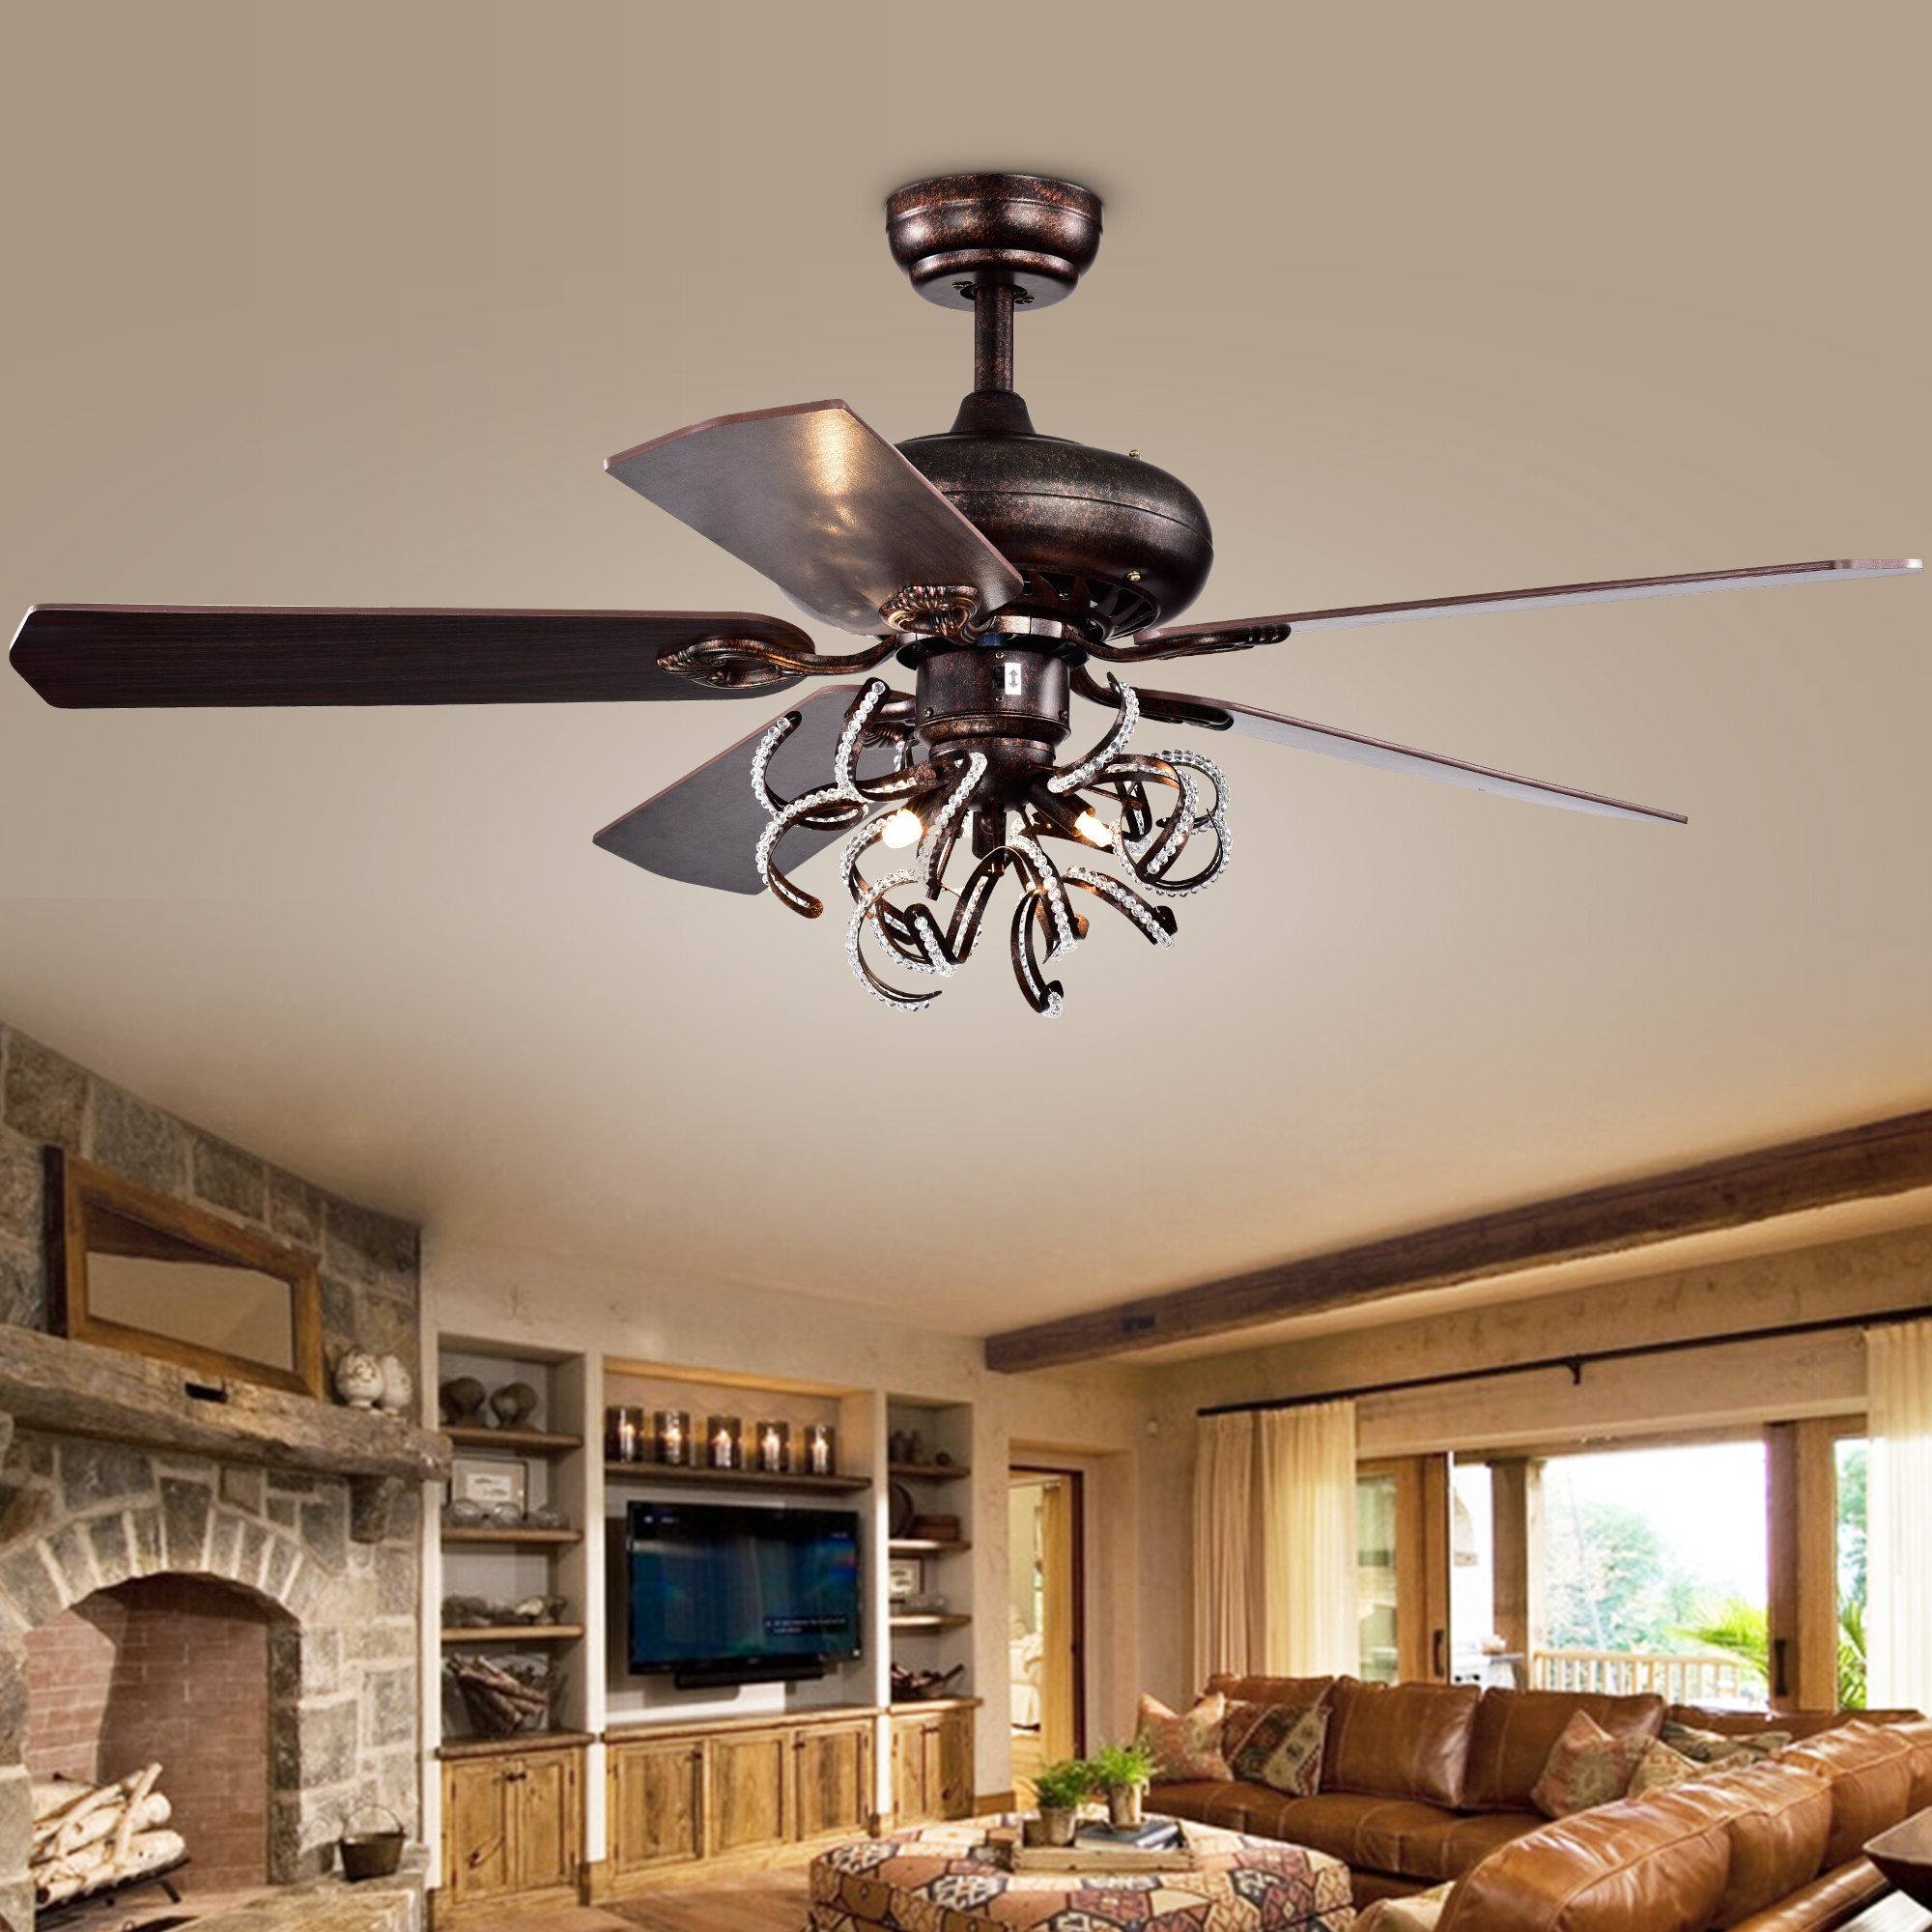 Fredericksen 5 Blade Ceiling Fans With Regard To Latest Christiansen 5 Blade Ceiling Fan, Light Kit Included (View 2 of 20)